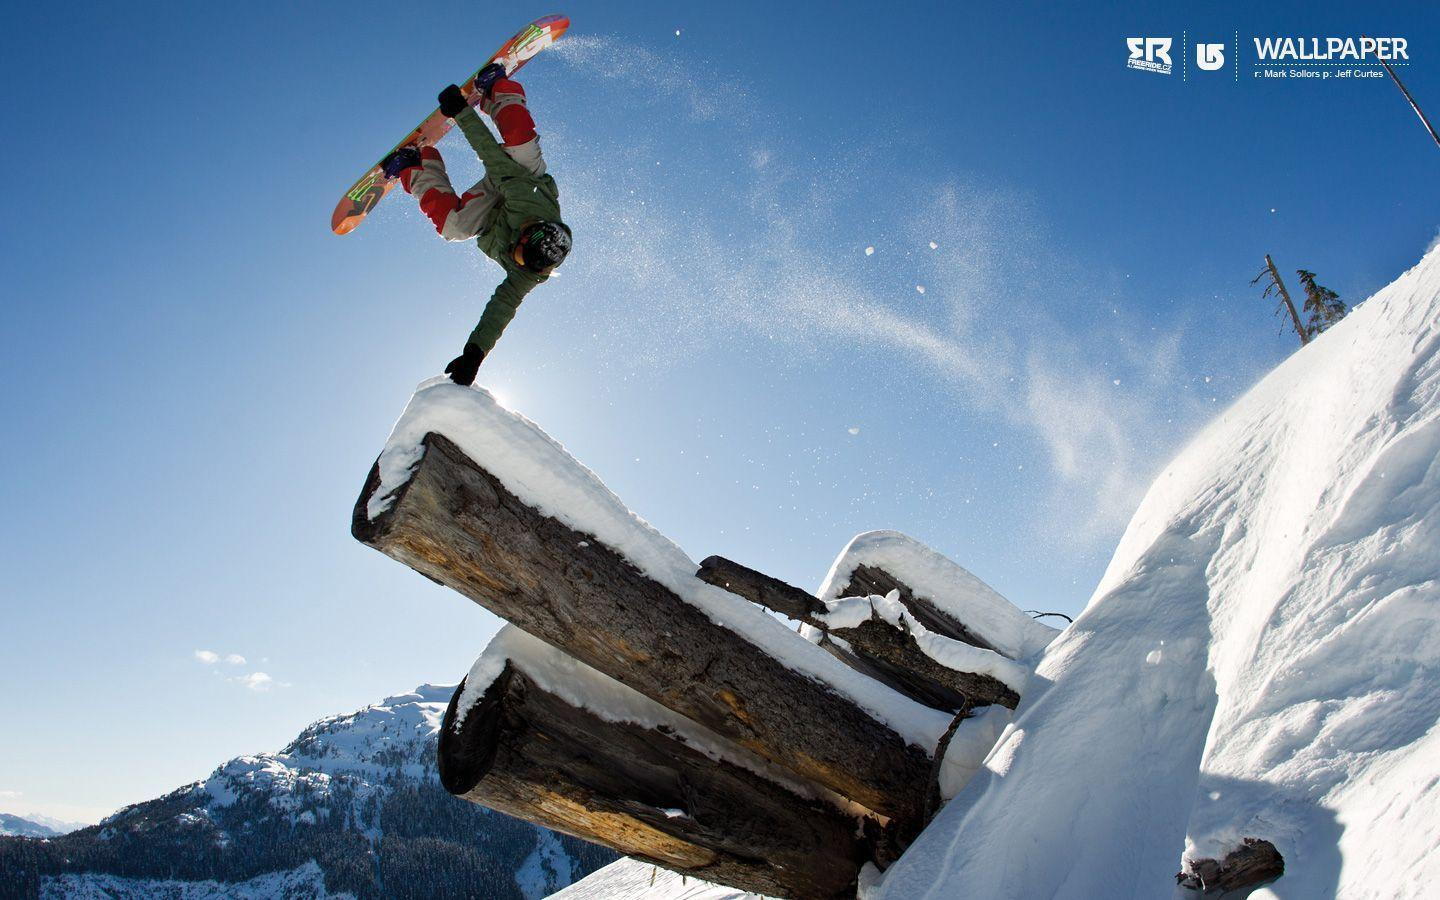 snowboarding wallpapers wallpaper-#28